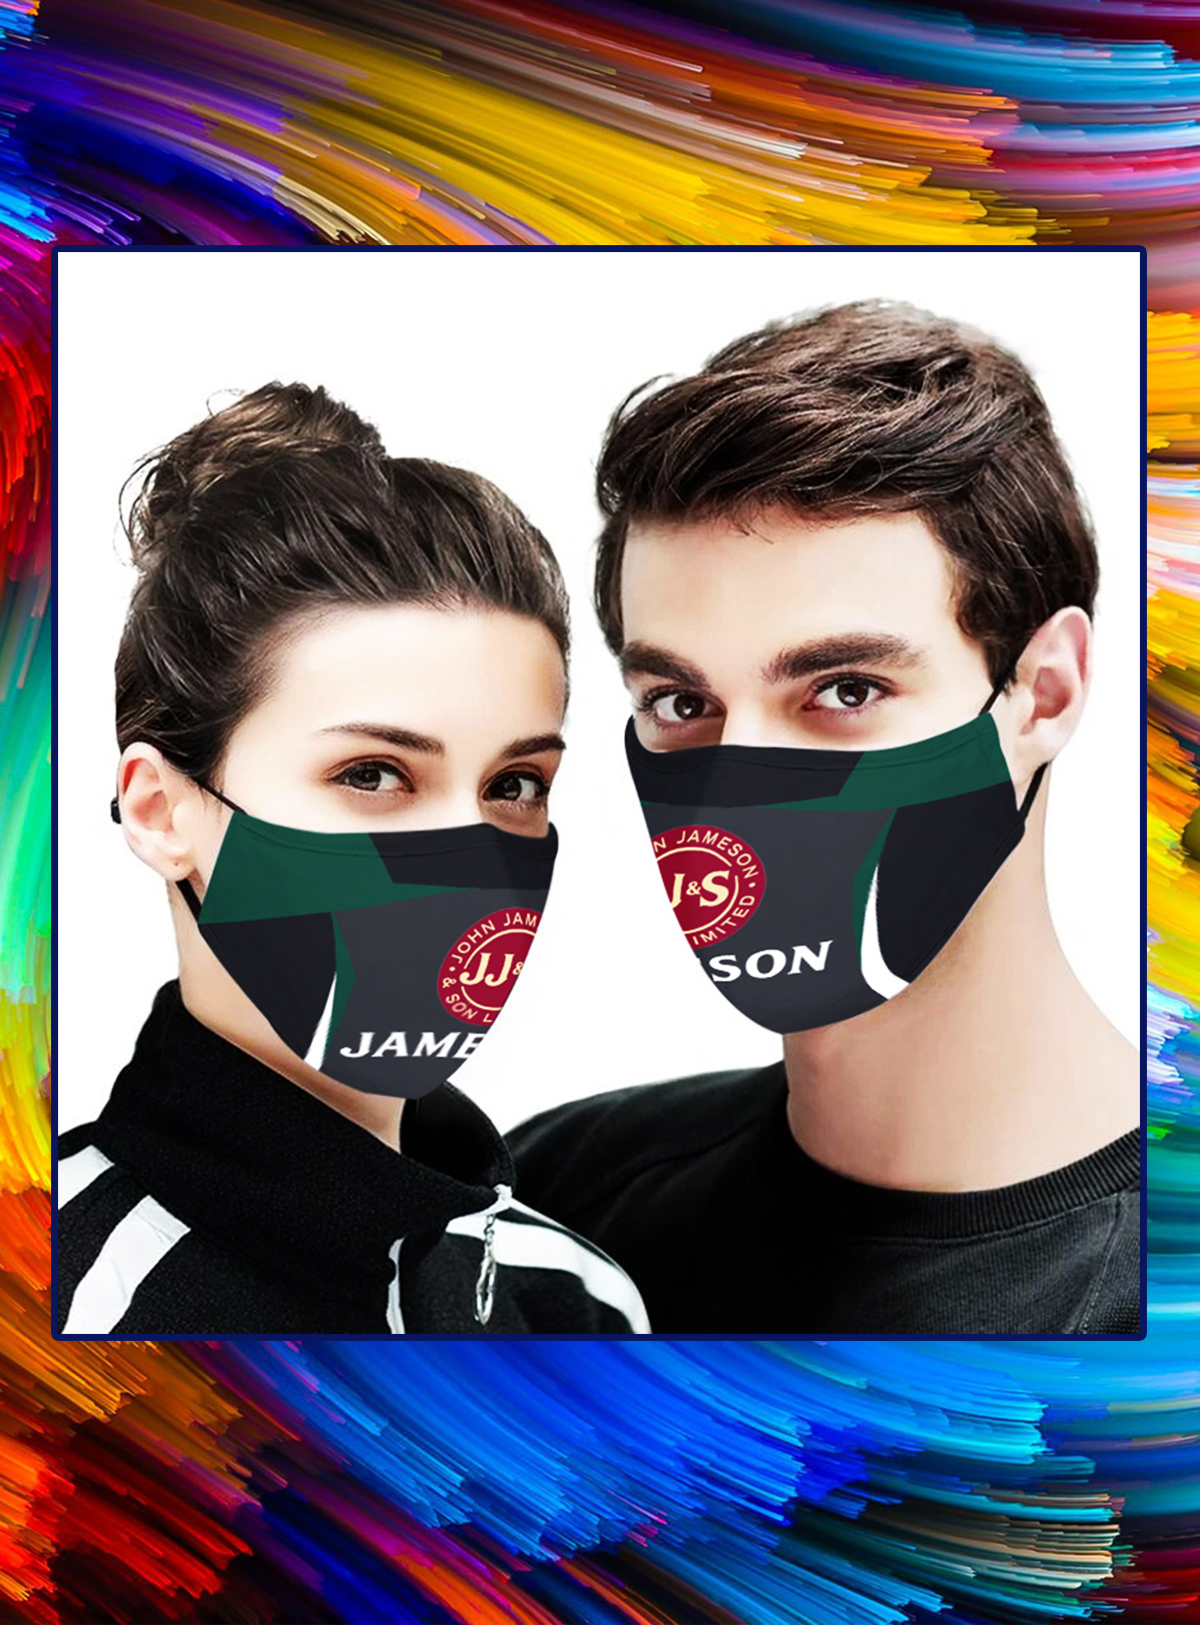 Jameson face mask - Picture 1